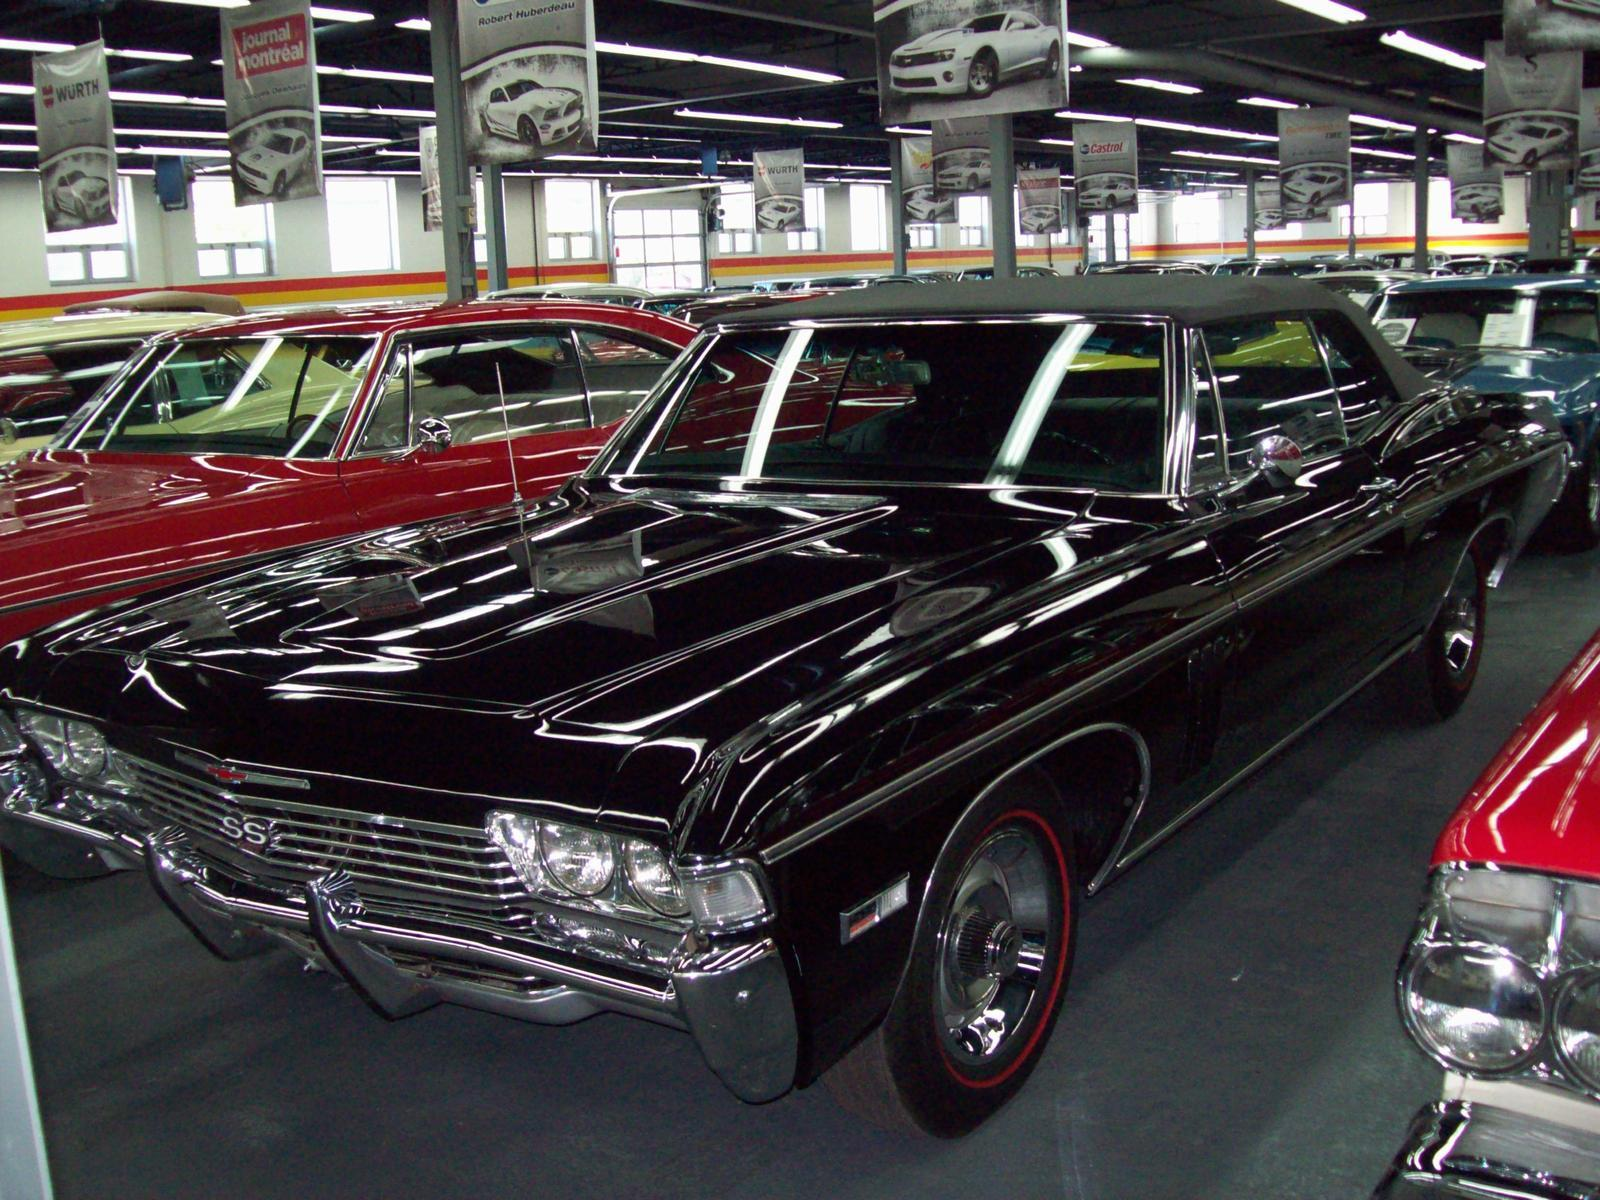 Used 1968 Chevrolet Impala Ss 427 For Sale In Saint Lonard John Custom Coupe Scotti Classic Cars H1r 2y7 2070795